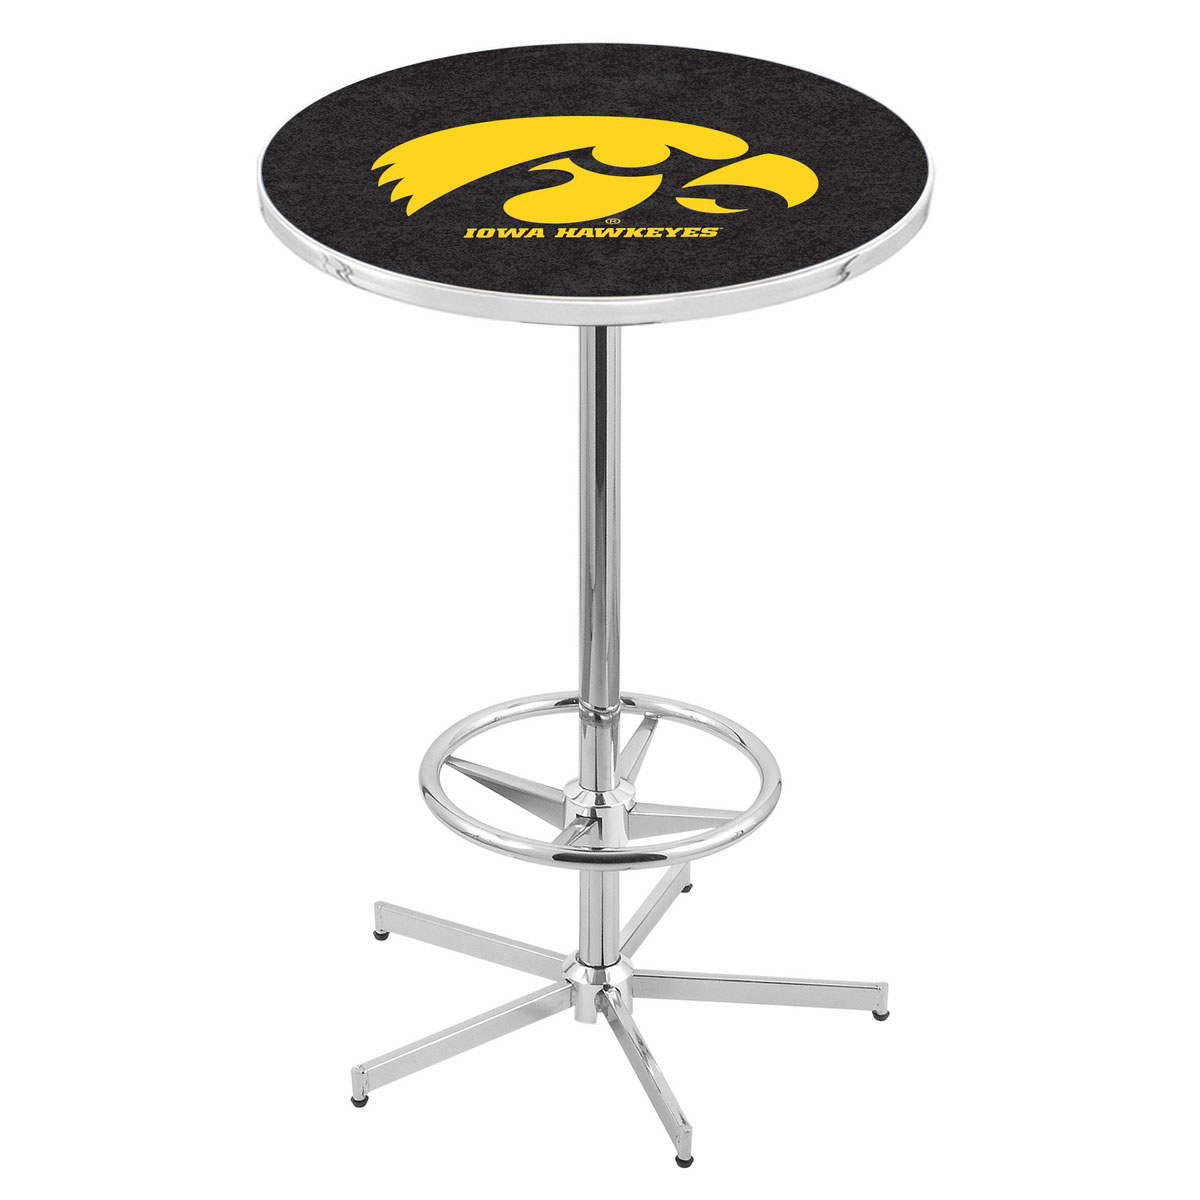 Affordable Chrome Iowa Pub Table Product Photo